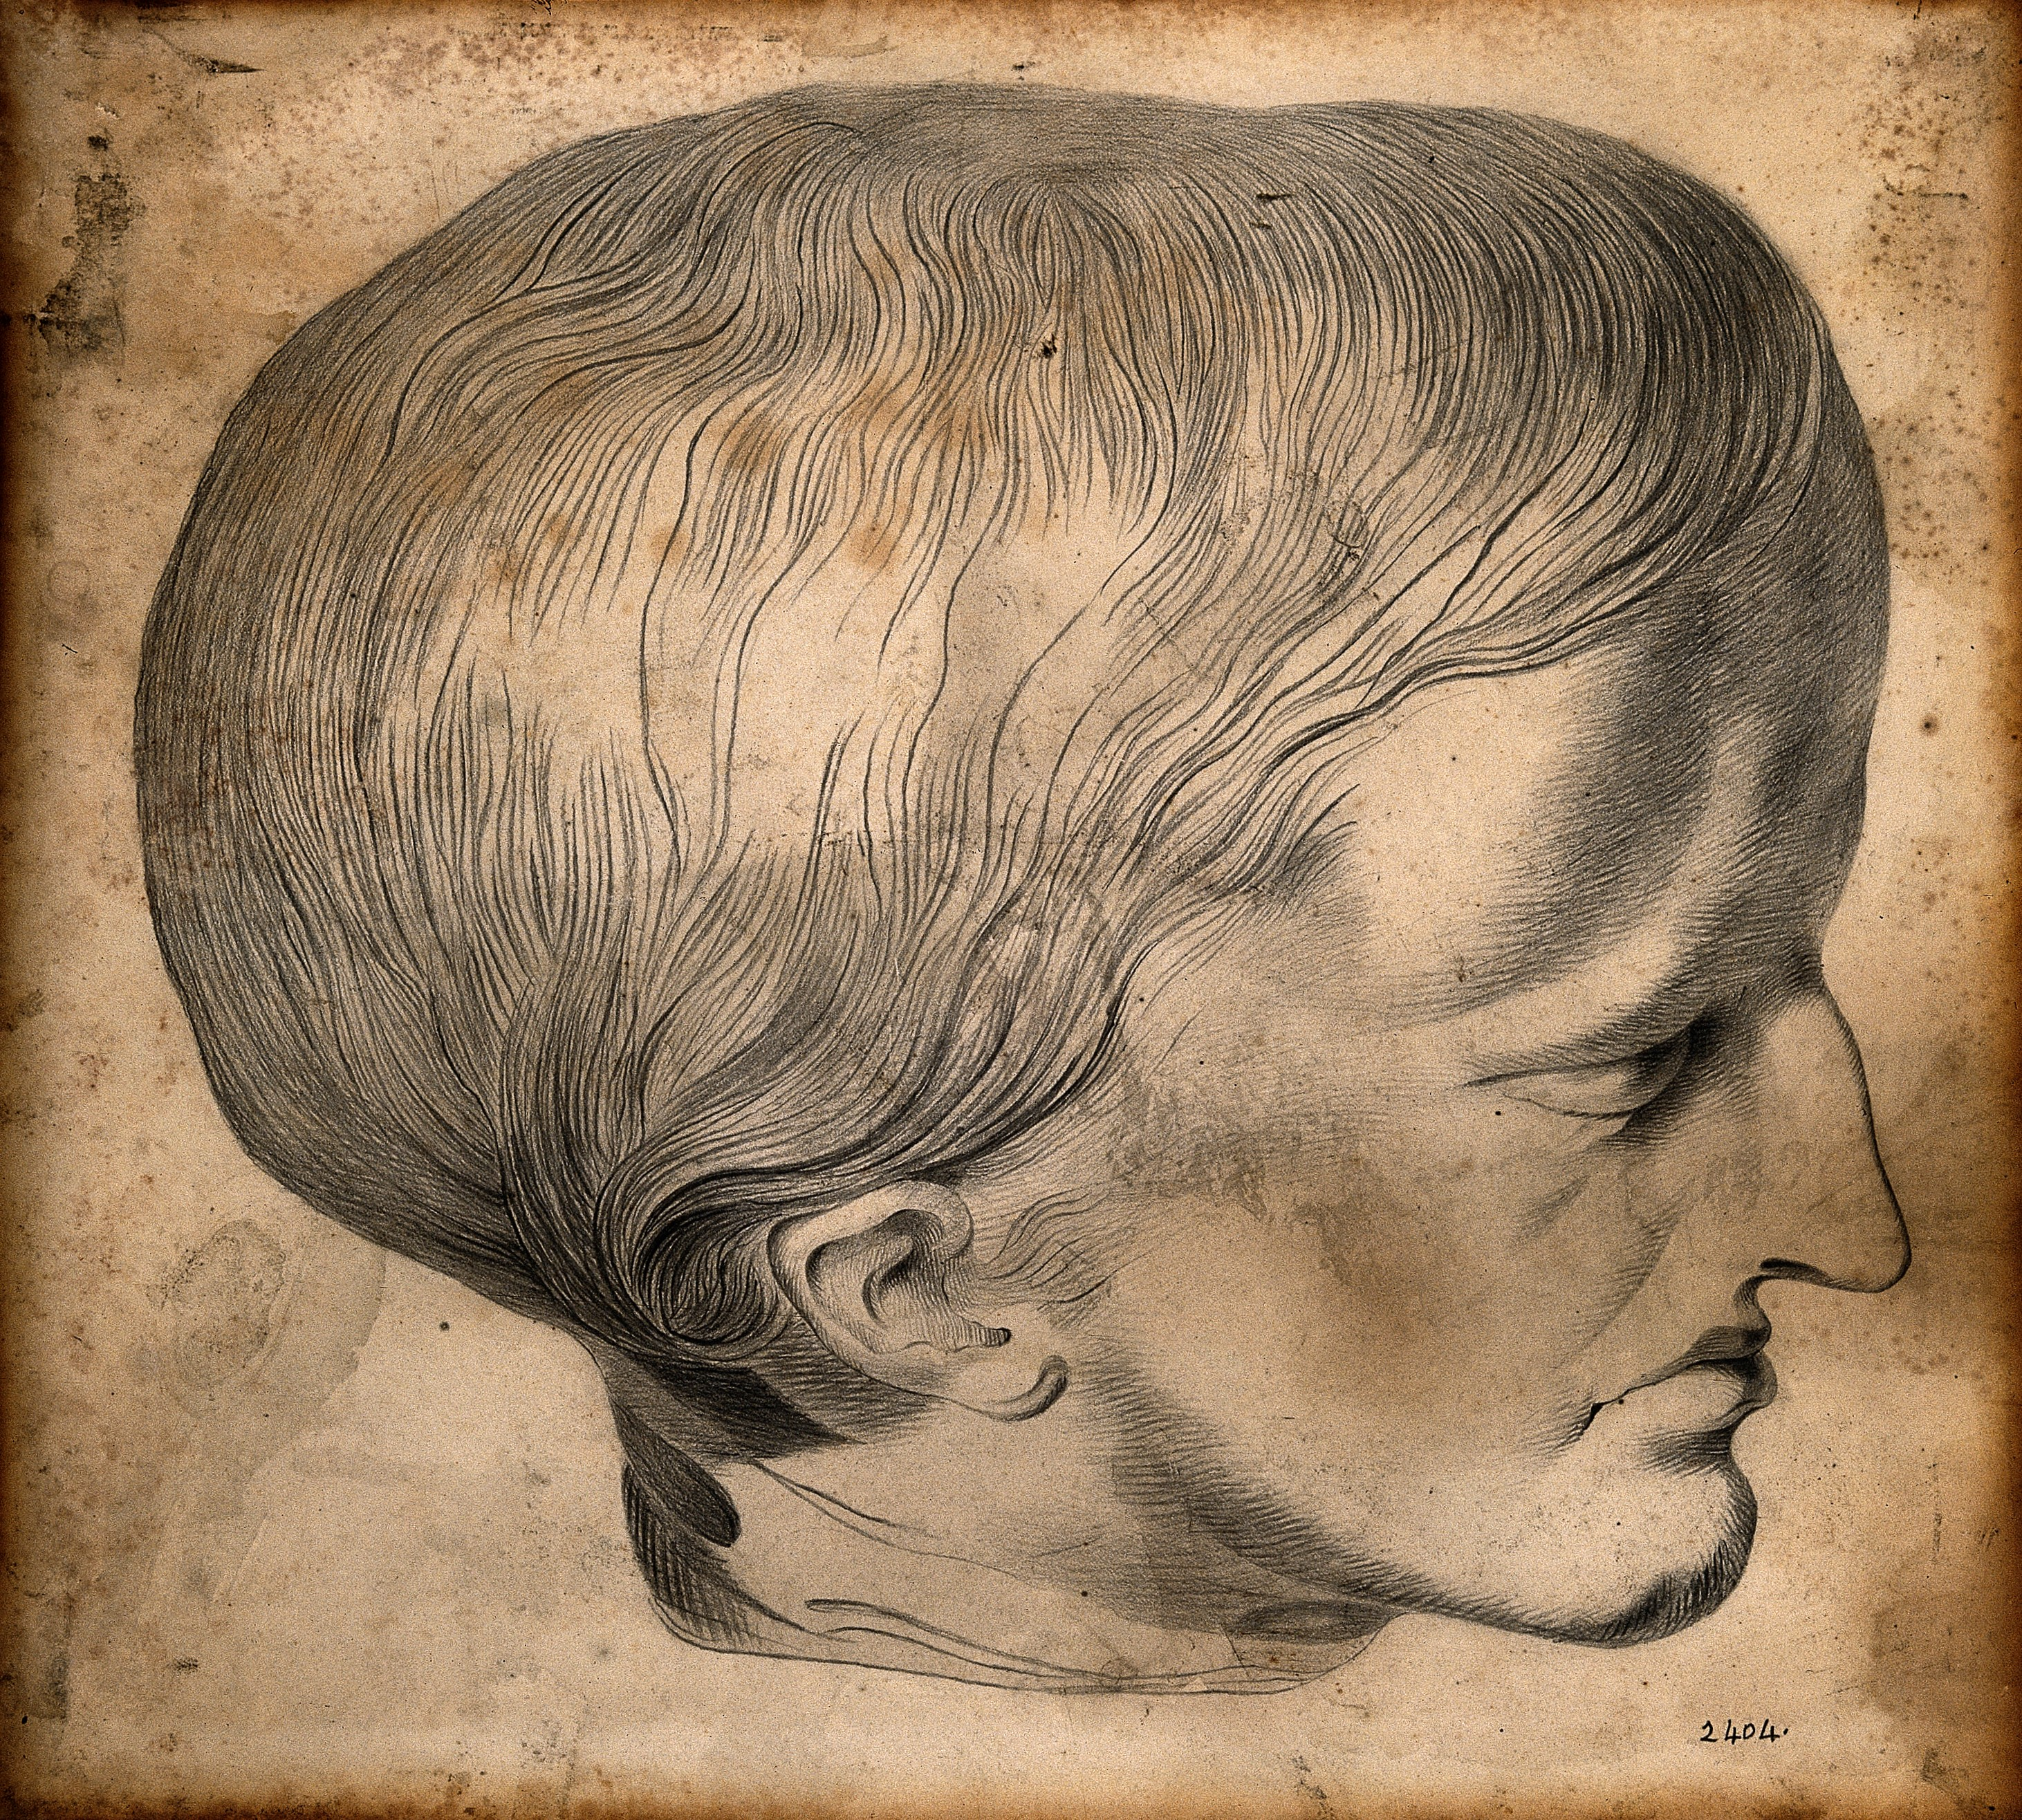 file head of james cardinal a man with a deformed skull drawing